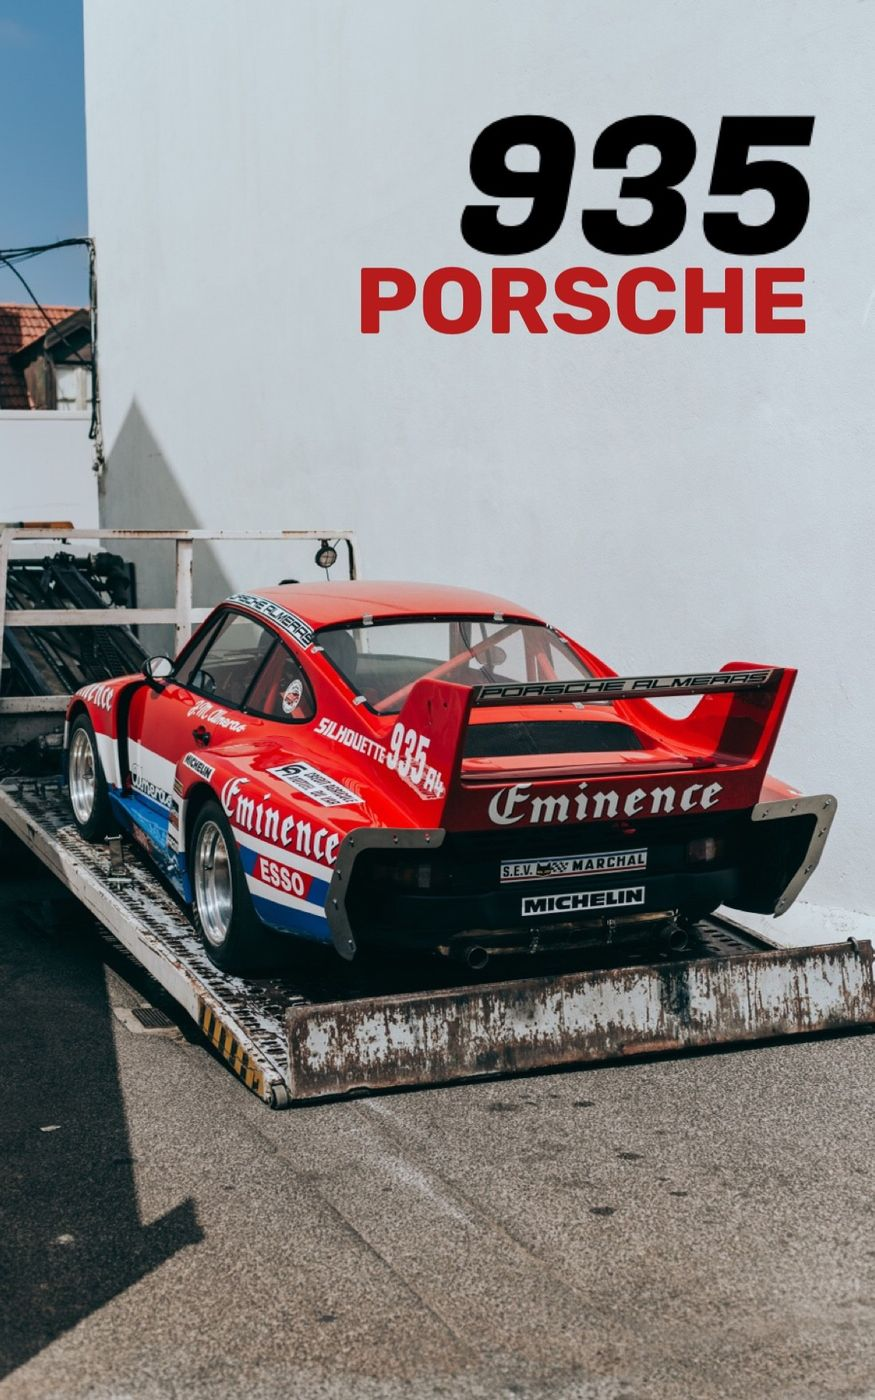 The homecoming of the Porsche935 🏎  We where lucky enough to shoot this legendary car on his way back into the garage. Breathtaking experience  📍 Sportclasse, Lisbon  Photos: Rosanne Steeneken Production: @parkerschmidt